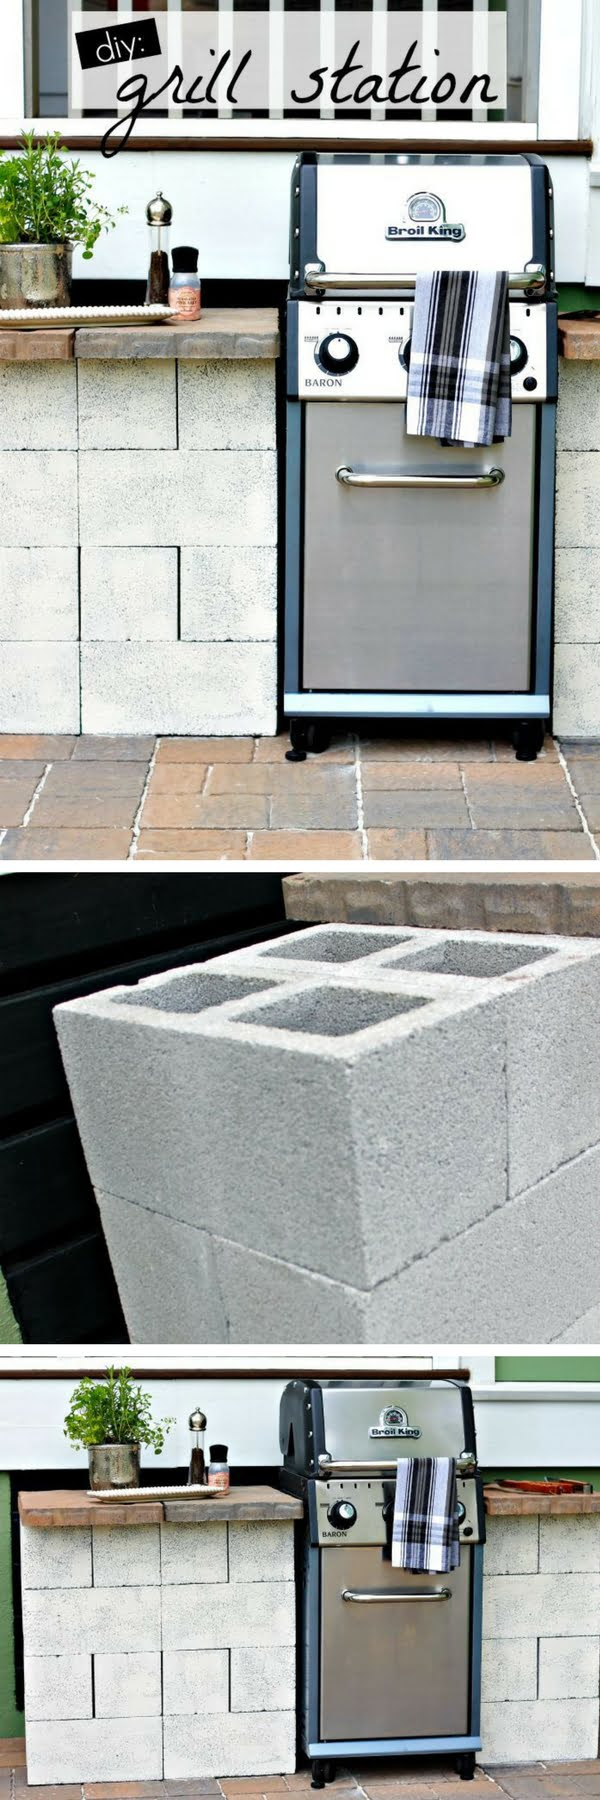 Check out how to build a DIY grill station from cinder blocks in your backyard